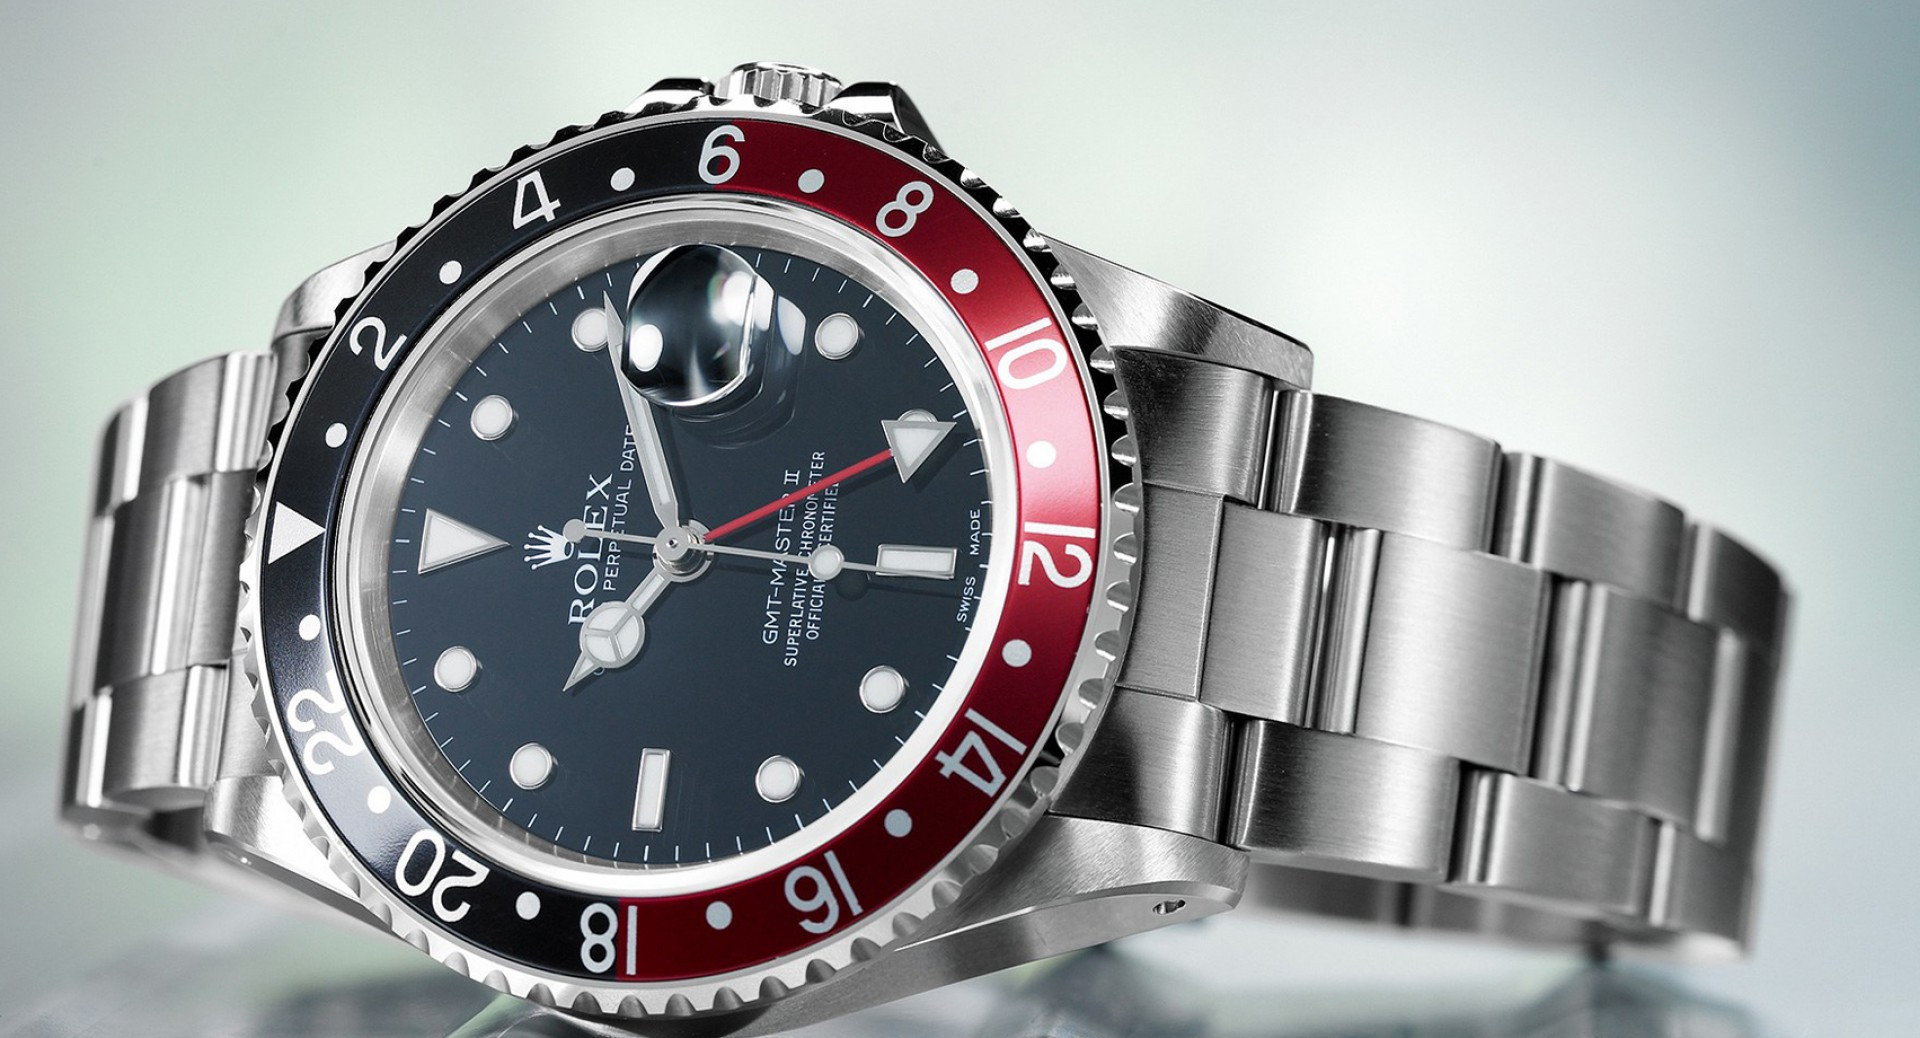 Finance Your Rolex Watch At 0 Interest And 48 Monthly Payments